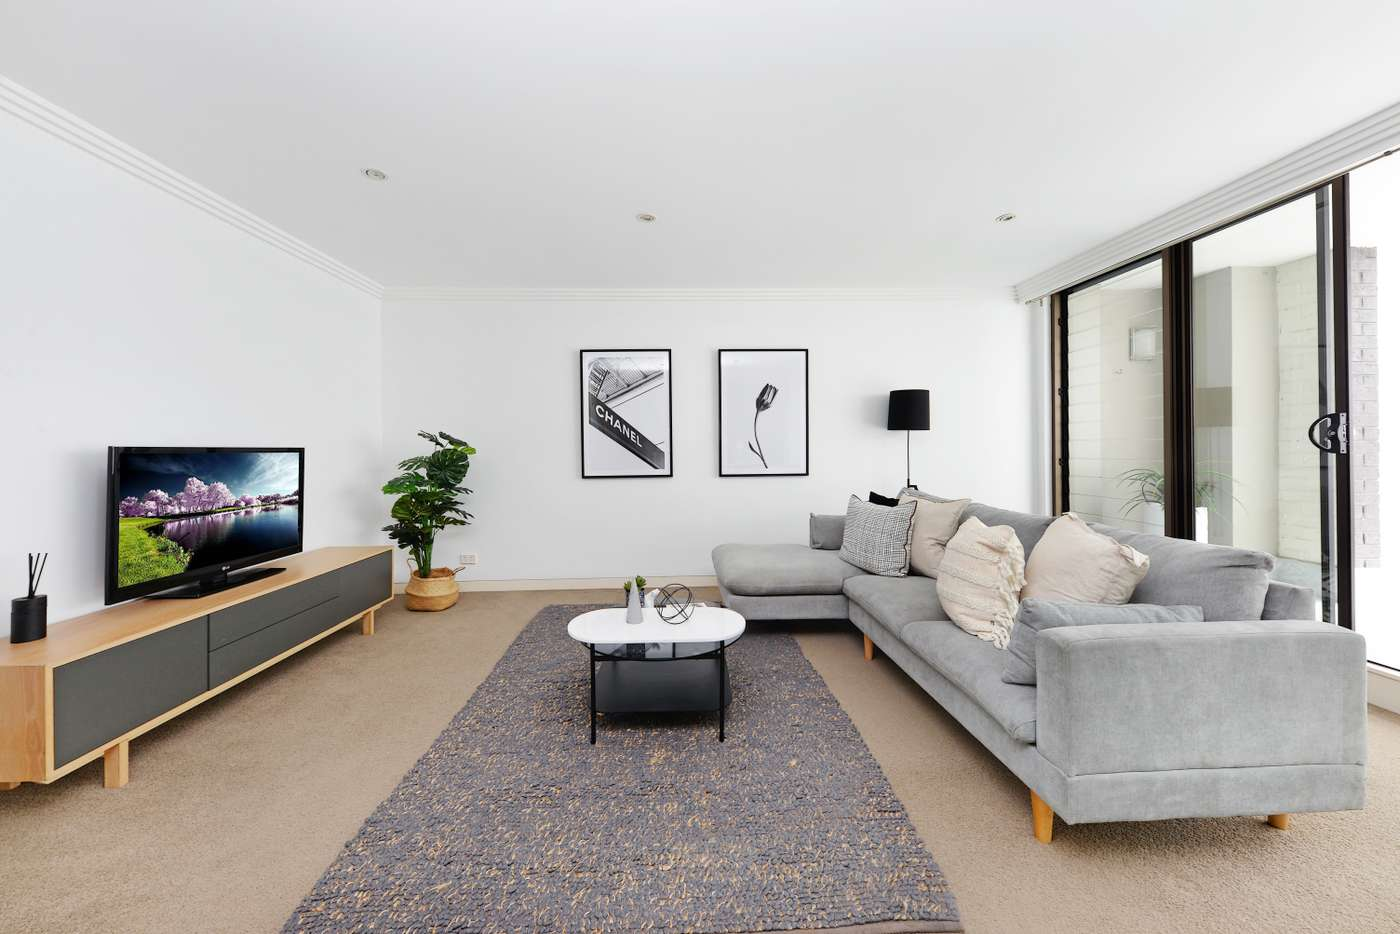 Main view of Homely unit listing, 311/200 Maroubra Road, Maroubra NSW 2035